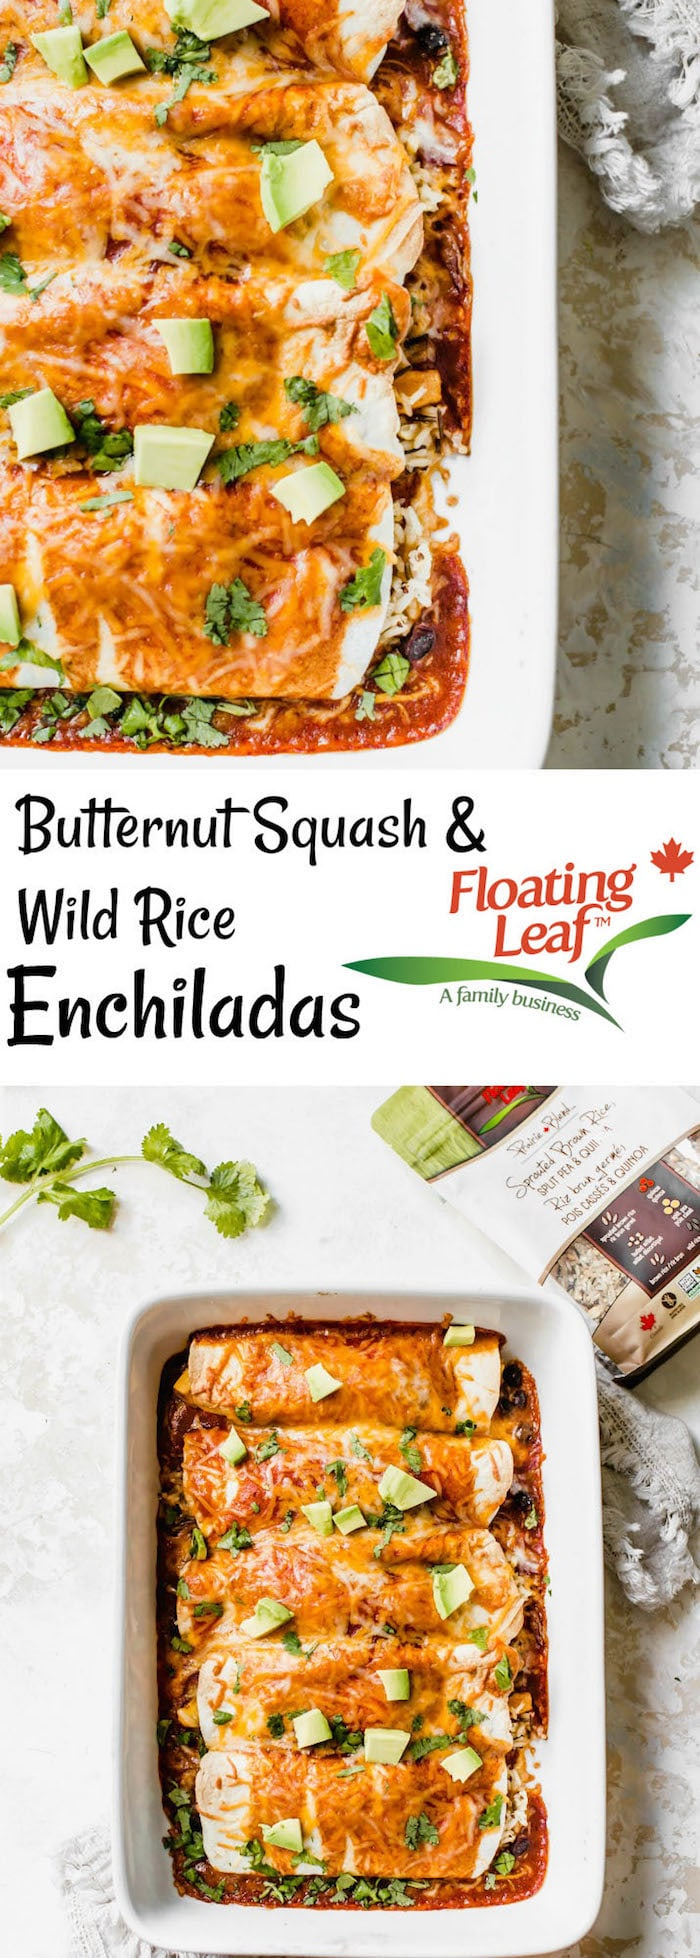 Butternut Squash Wild Rice Enchiladas | a tasty vegetarian recipe that's perfect for #meatlessmonday | thealmondeater.com